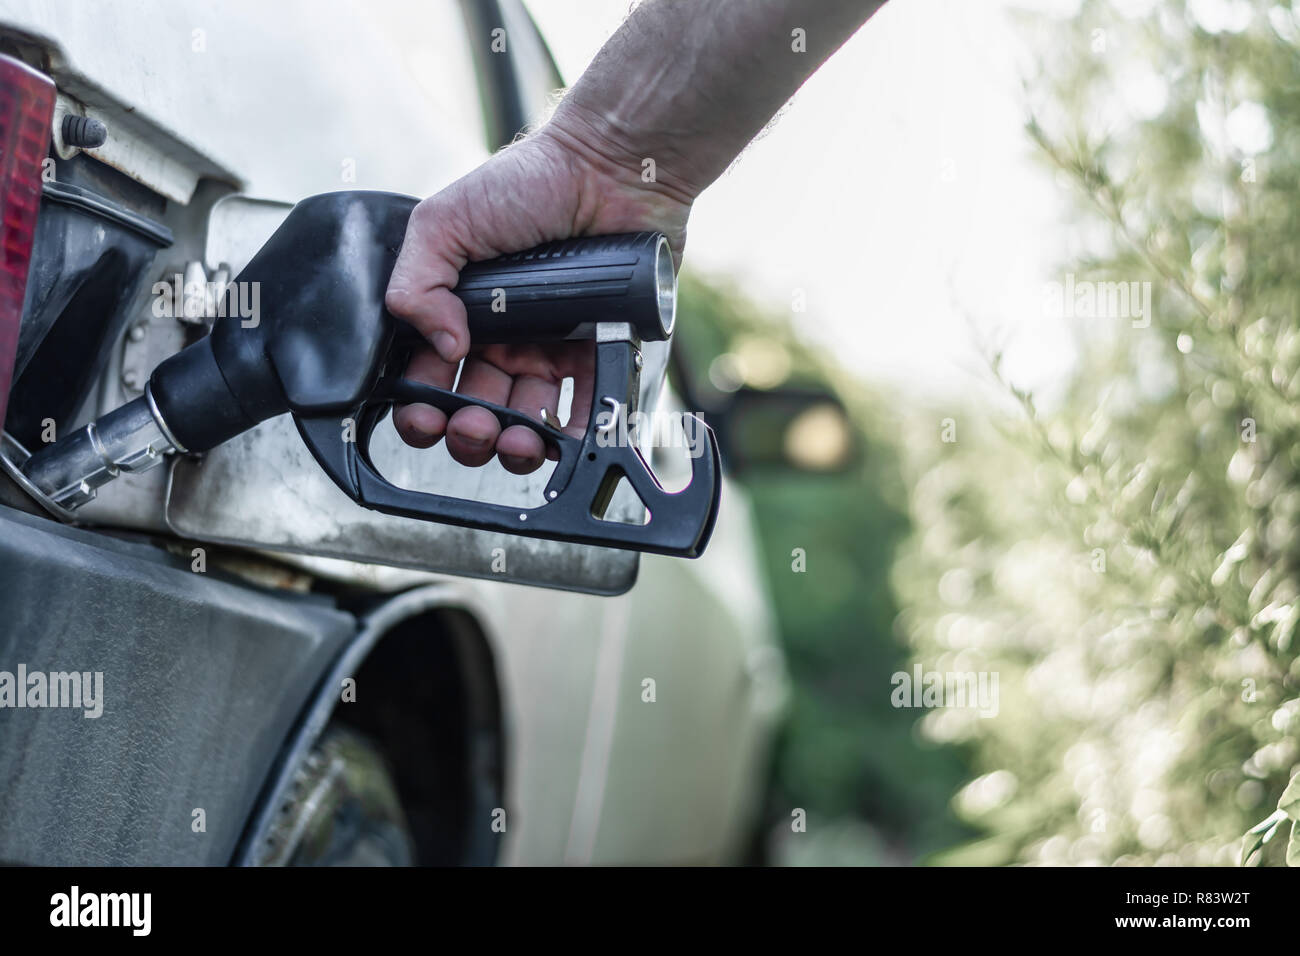 The fuel crisis in the global economy - Stock Image